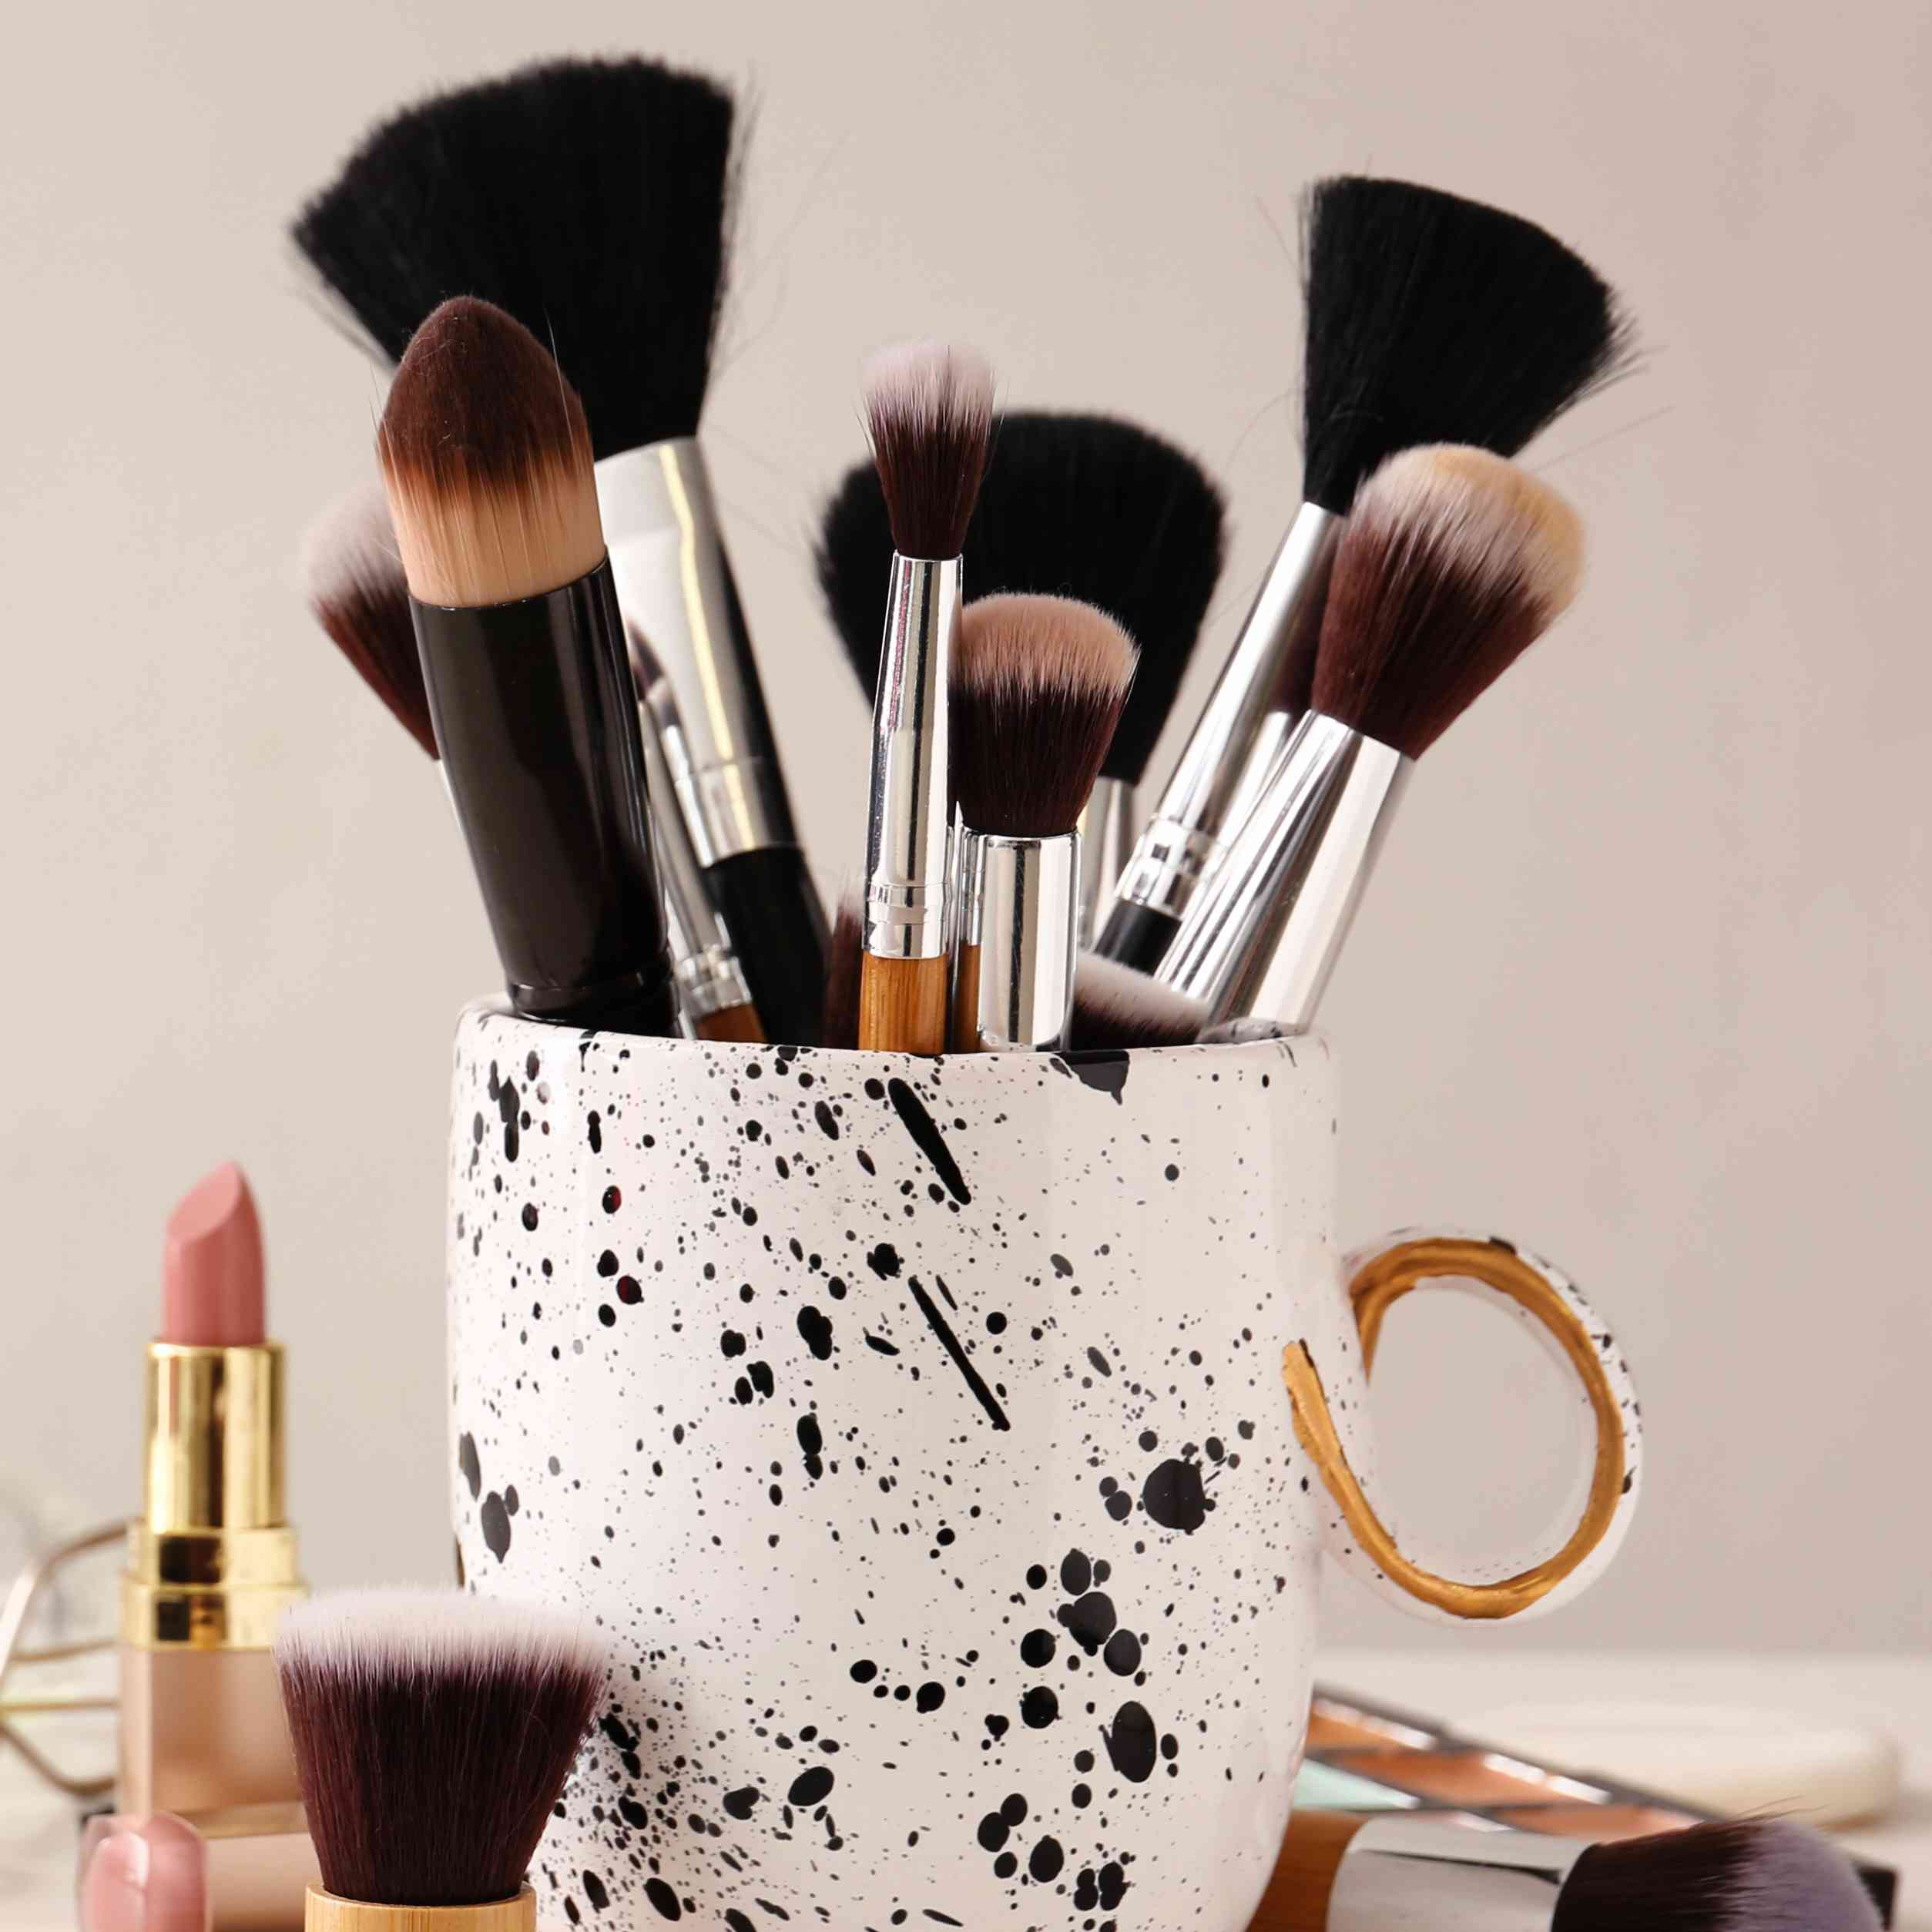 Makeup brushes in coffee cup